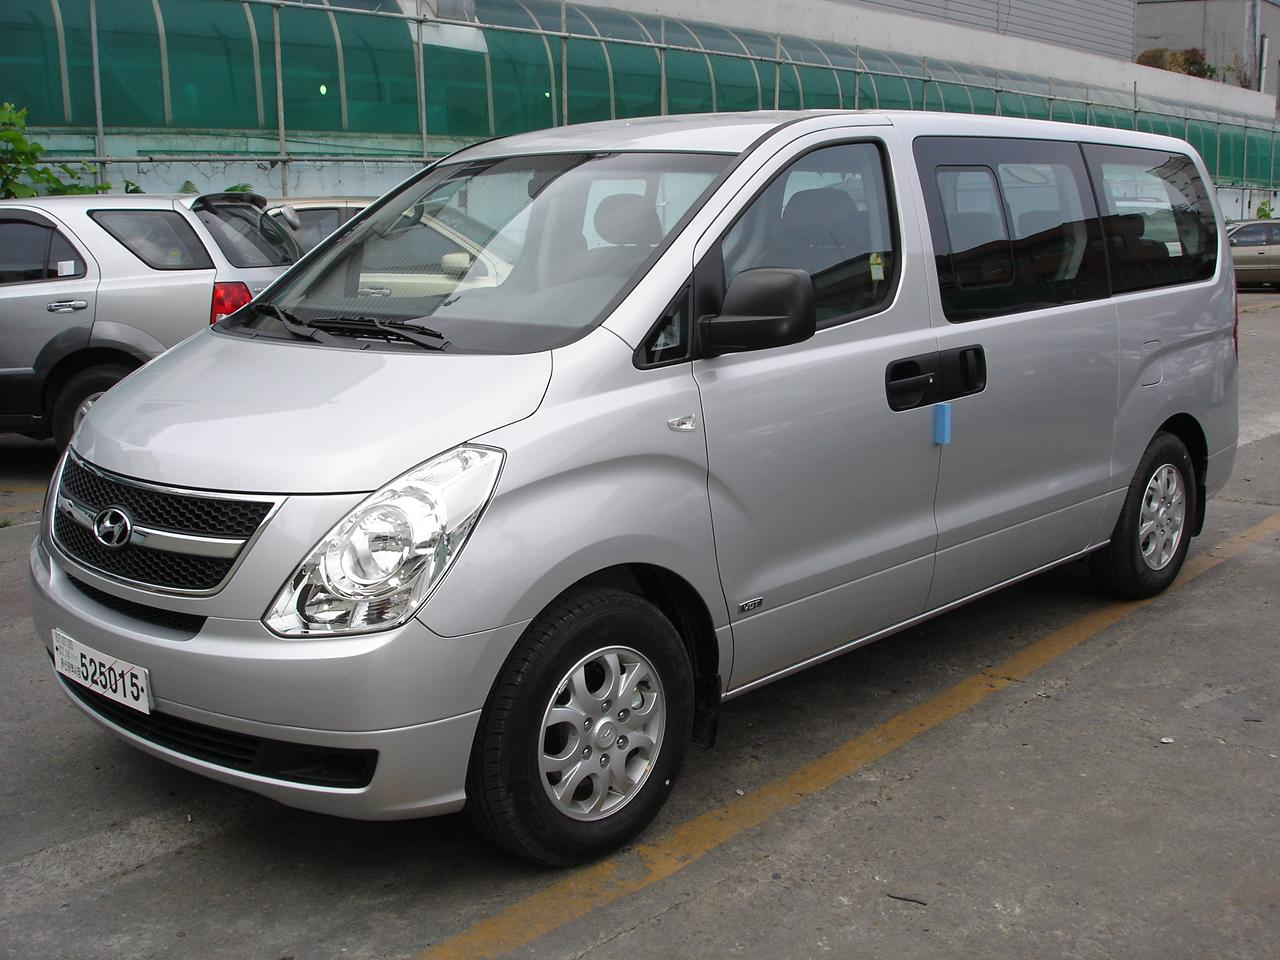 2004 hyundai h 1 starex pictures information and specs. Black Bedroom Furniture Sets. Home Design Ideas